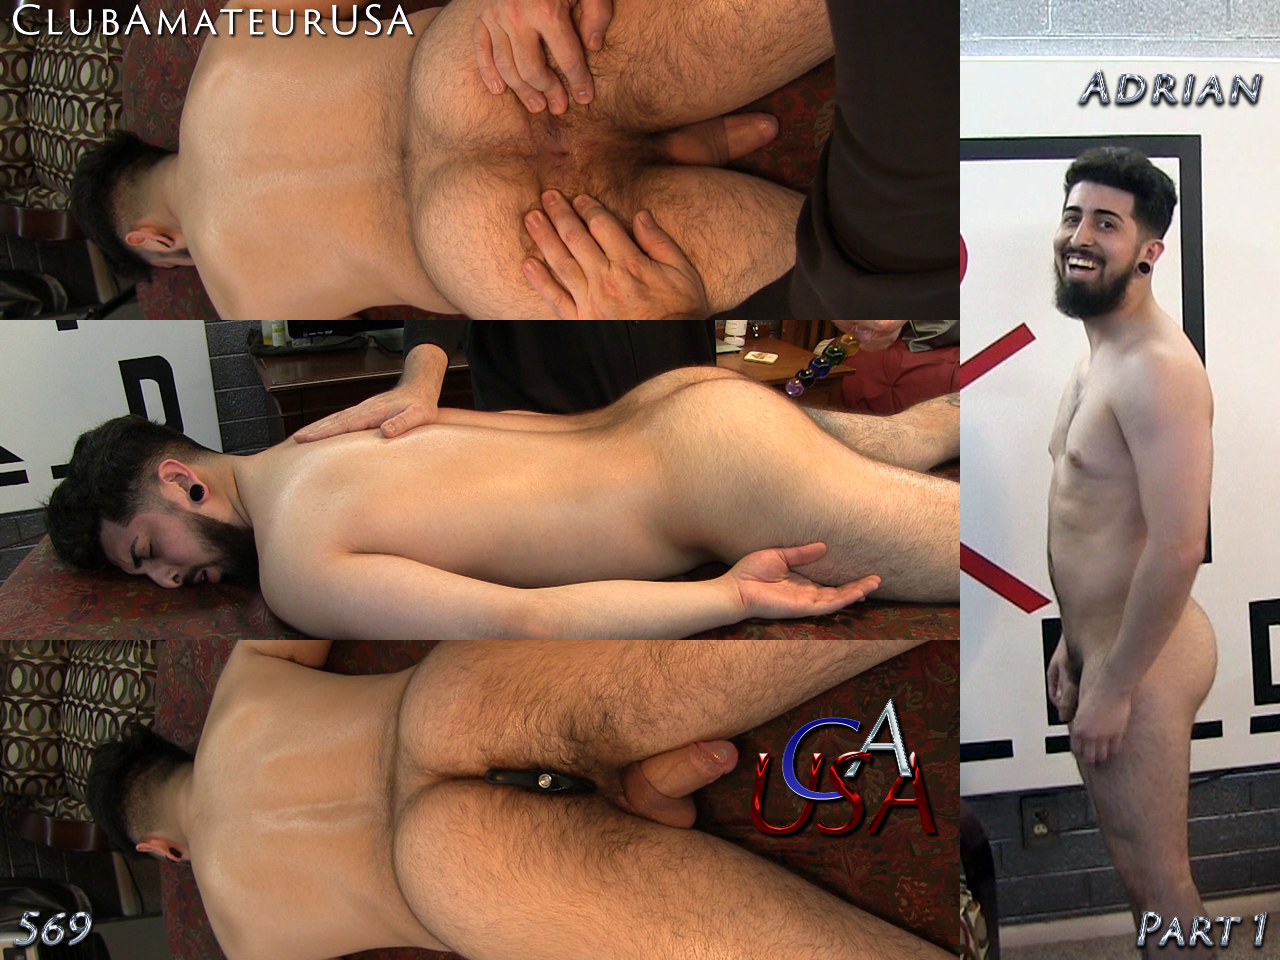 Download or Stream CAUSA 569 Adrian - Part 1 - Click Here Now